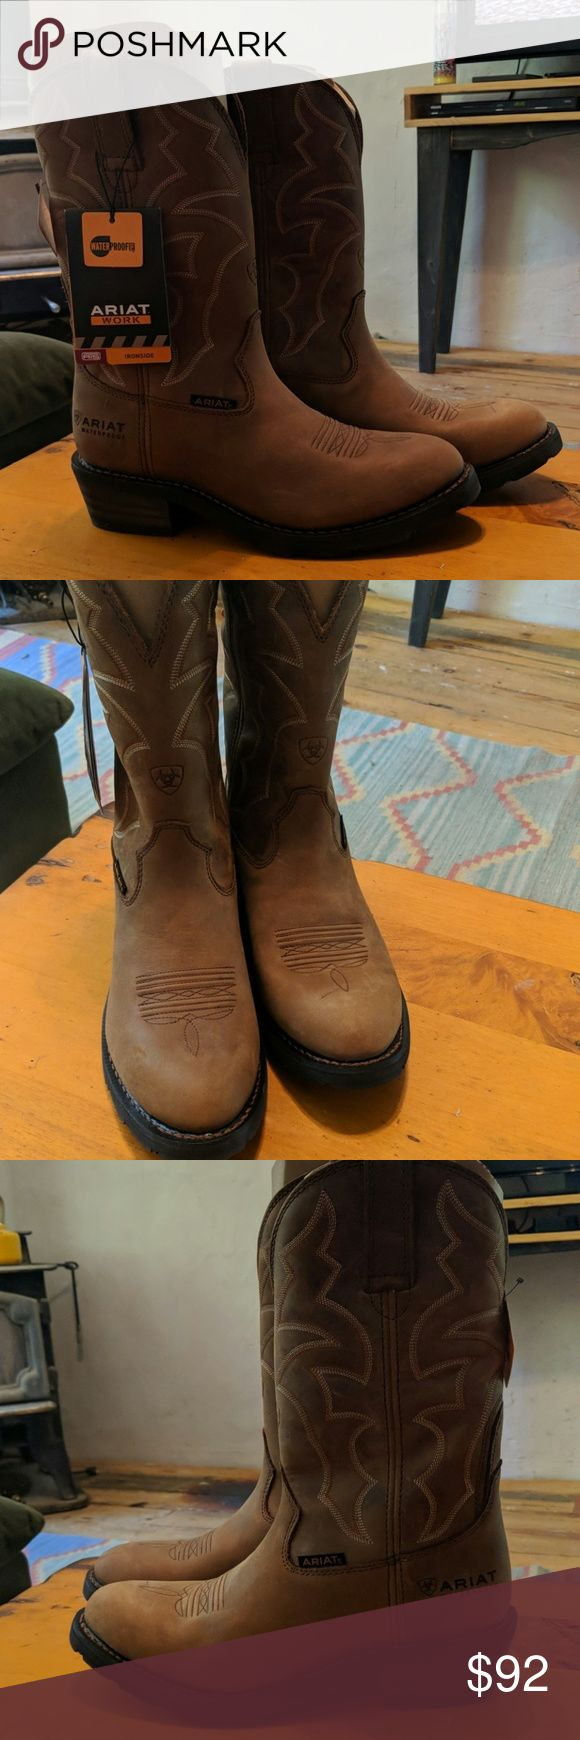 Brand New Ariat Waterproof Cowboy Boots Beautiful, comfortable, well made Ariat …